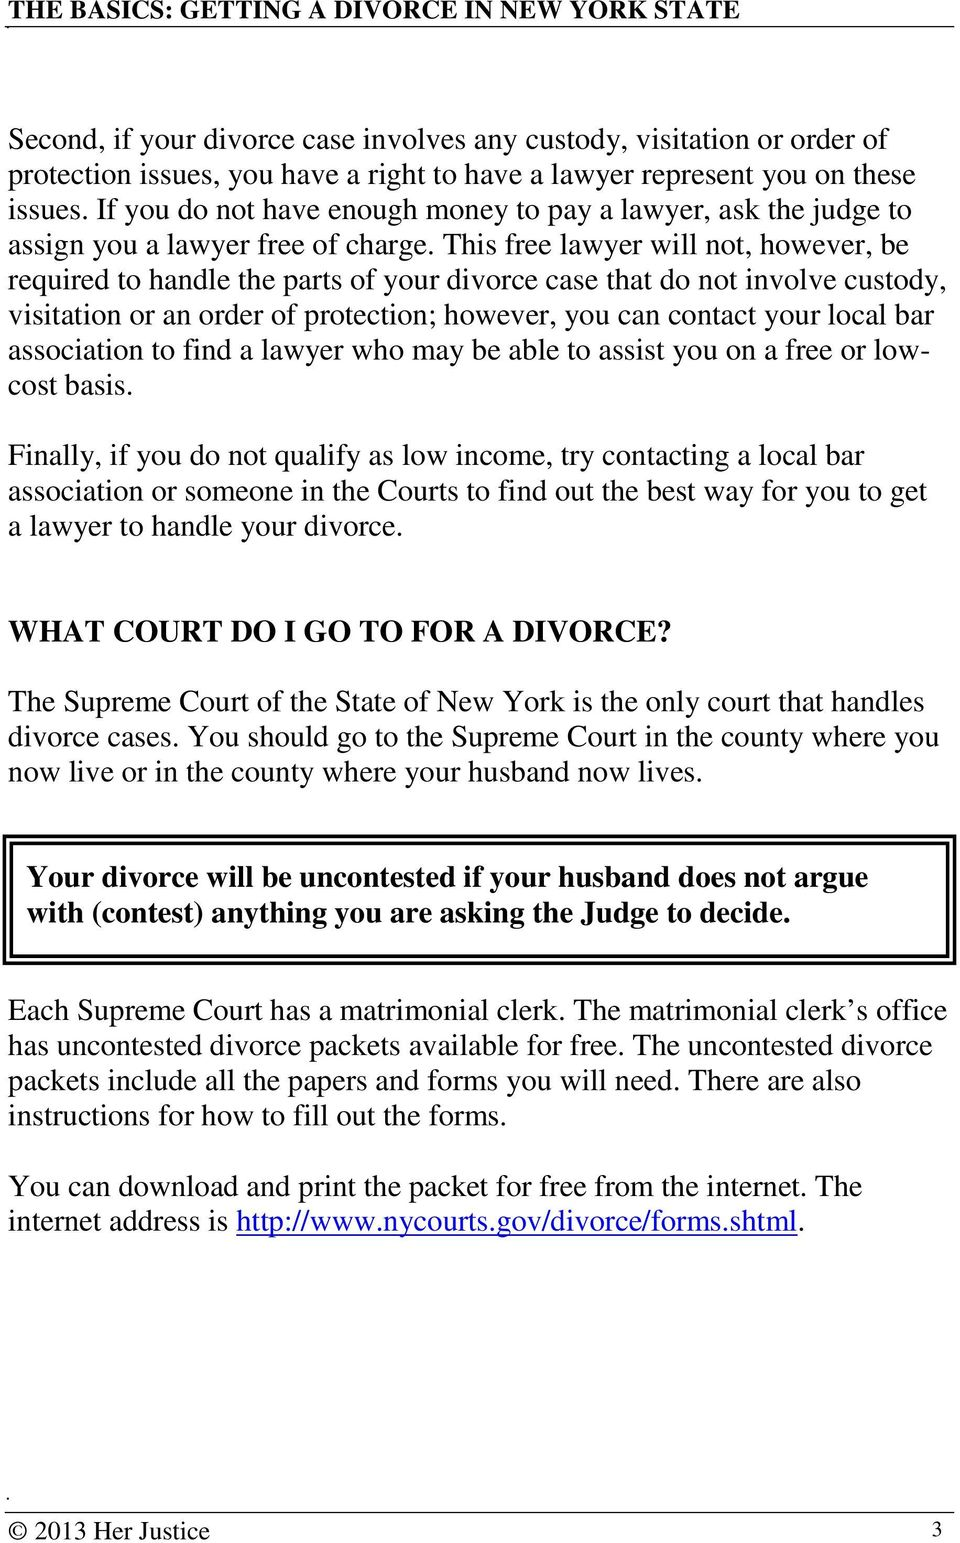 Nys Supreme Court Divorce Forms